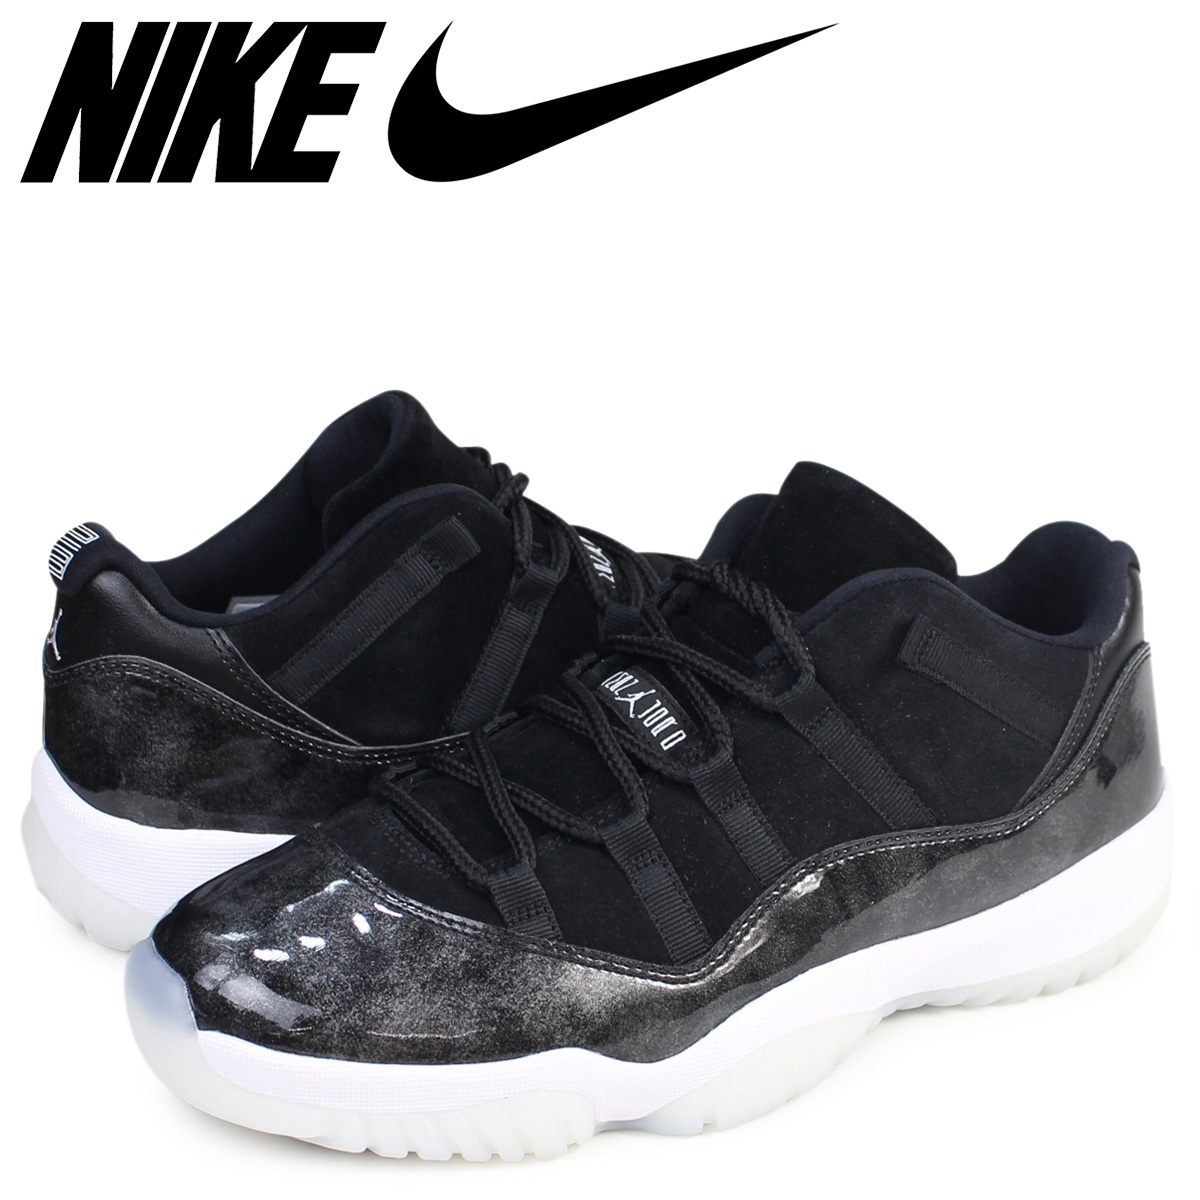 1caba3d1db3 NIKE Nike Air Jordan 11 sneakers AIR JORDAN 11 LOW BARONS low 528,895-010  men's ...